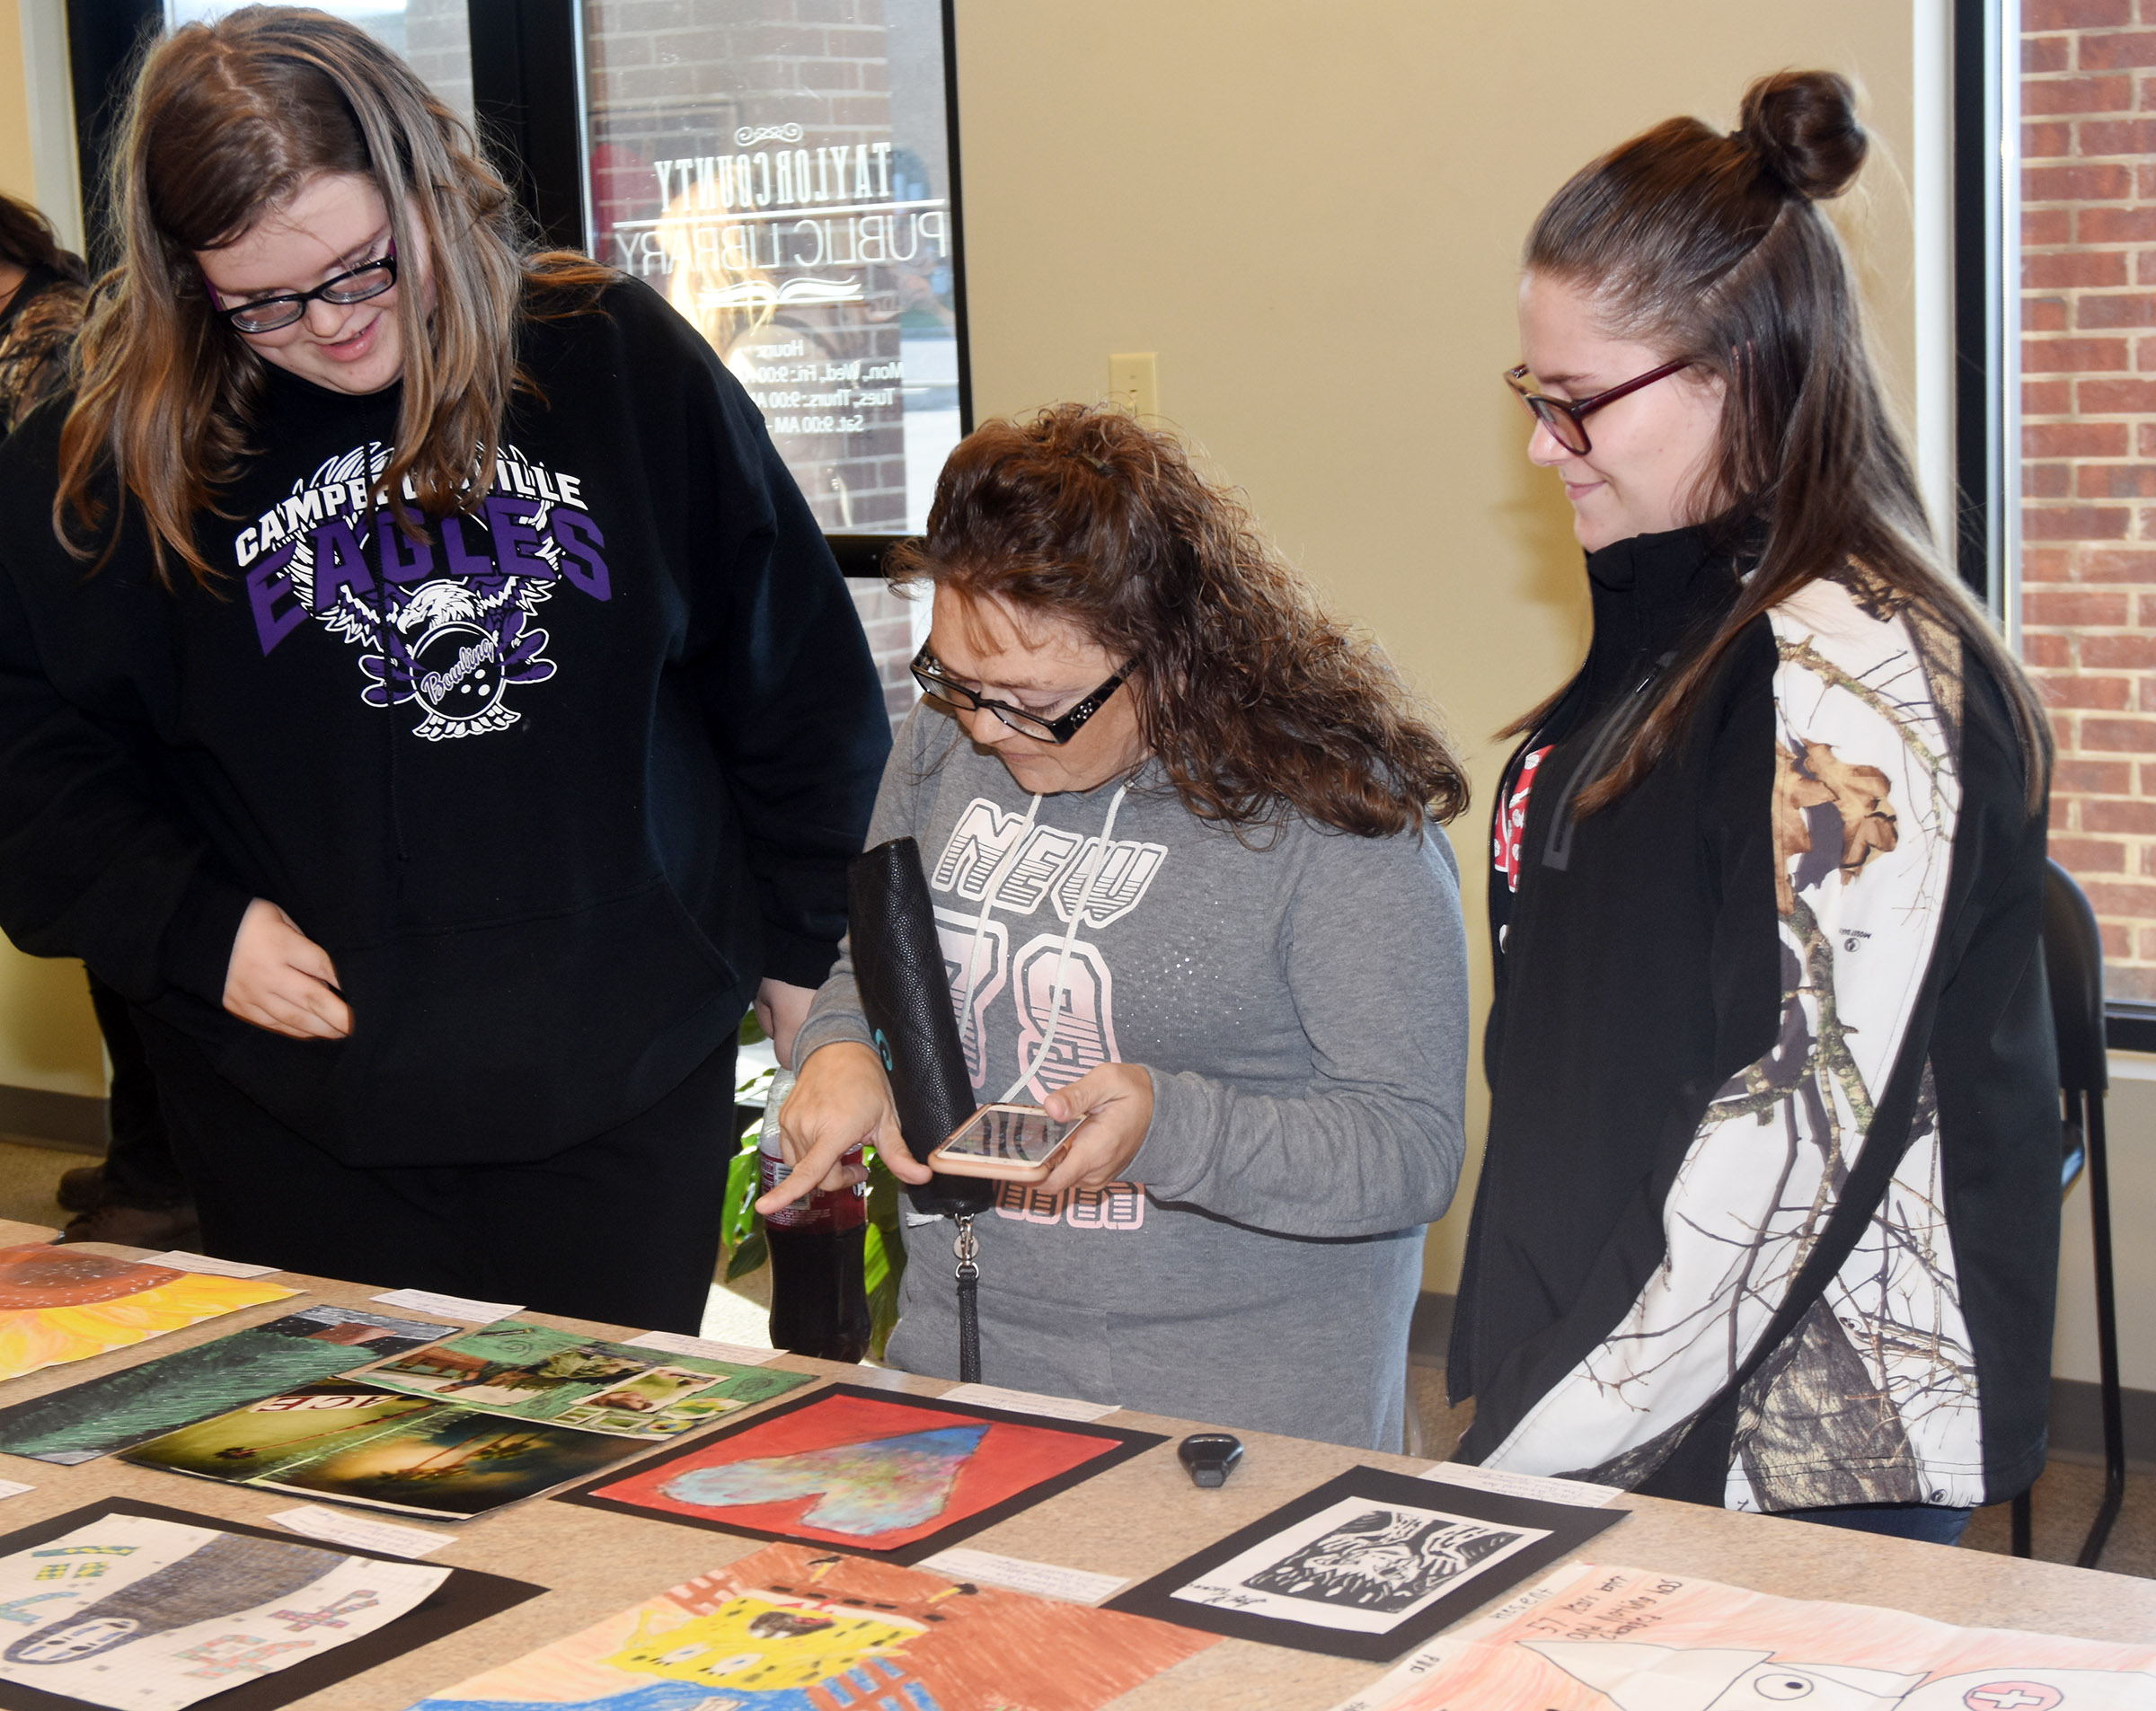 CHS freshman Taylor Brewer, at left, and sophomore Nevaeh Underwood look at artwork with Underwood's mother Tara.